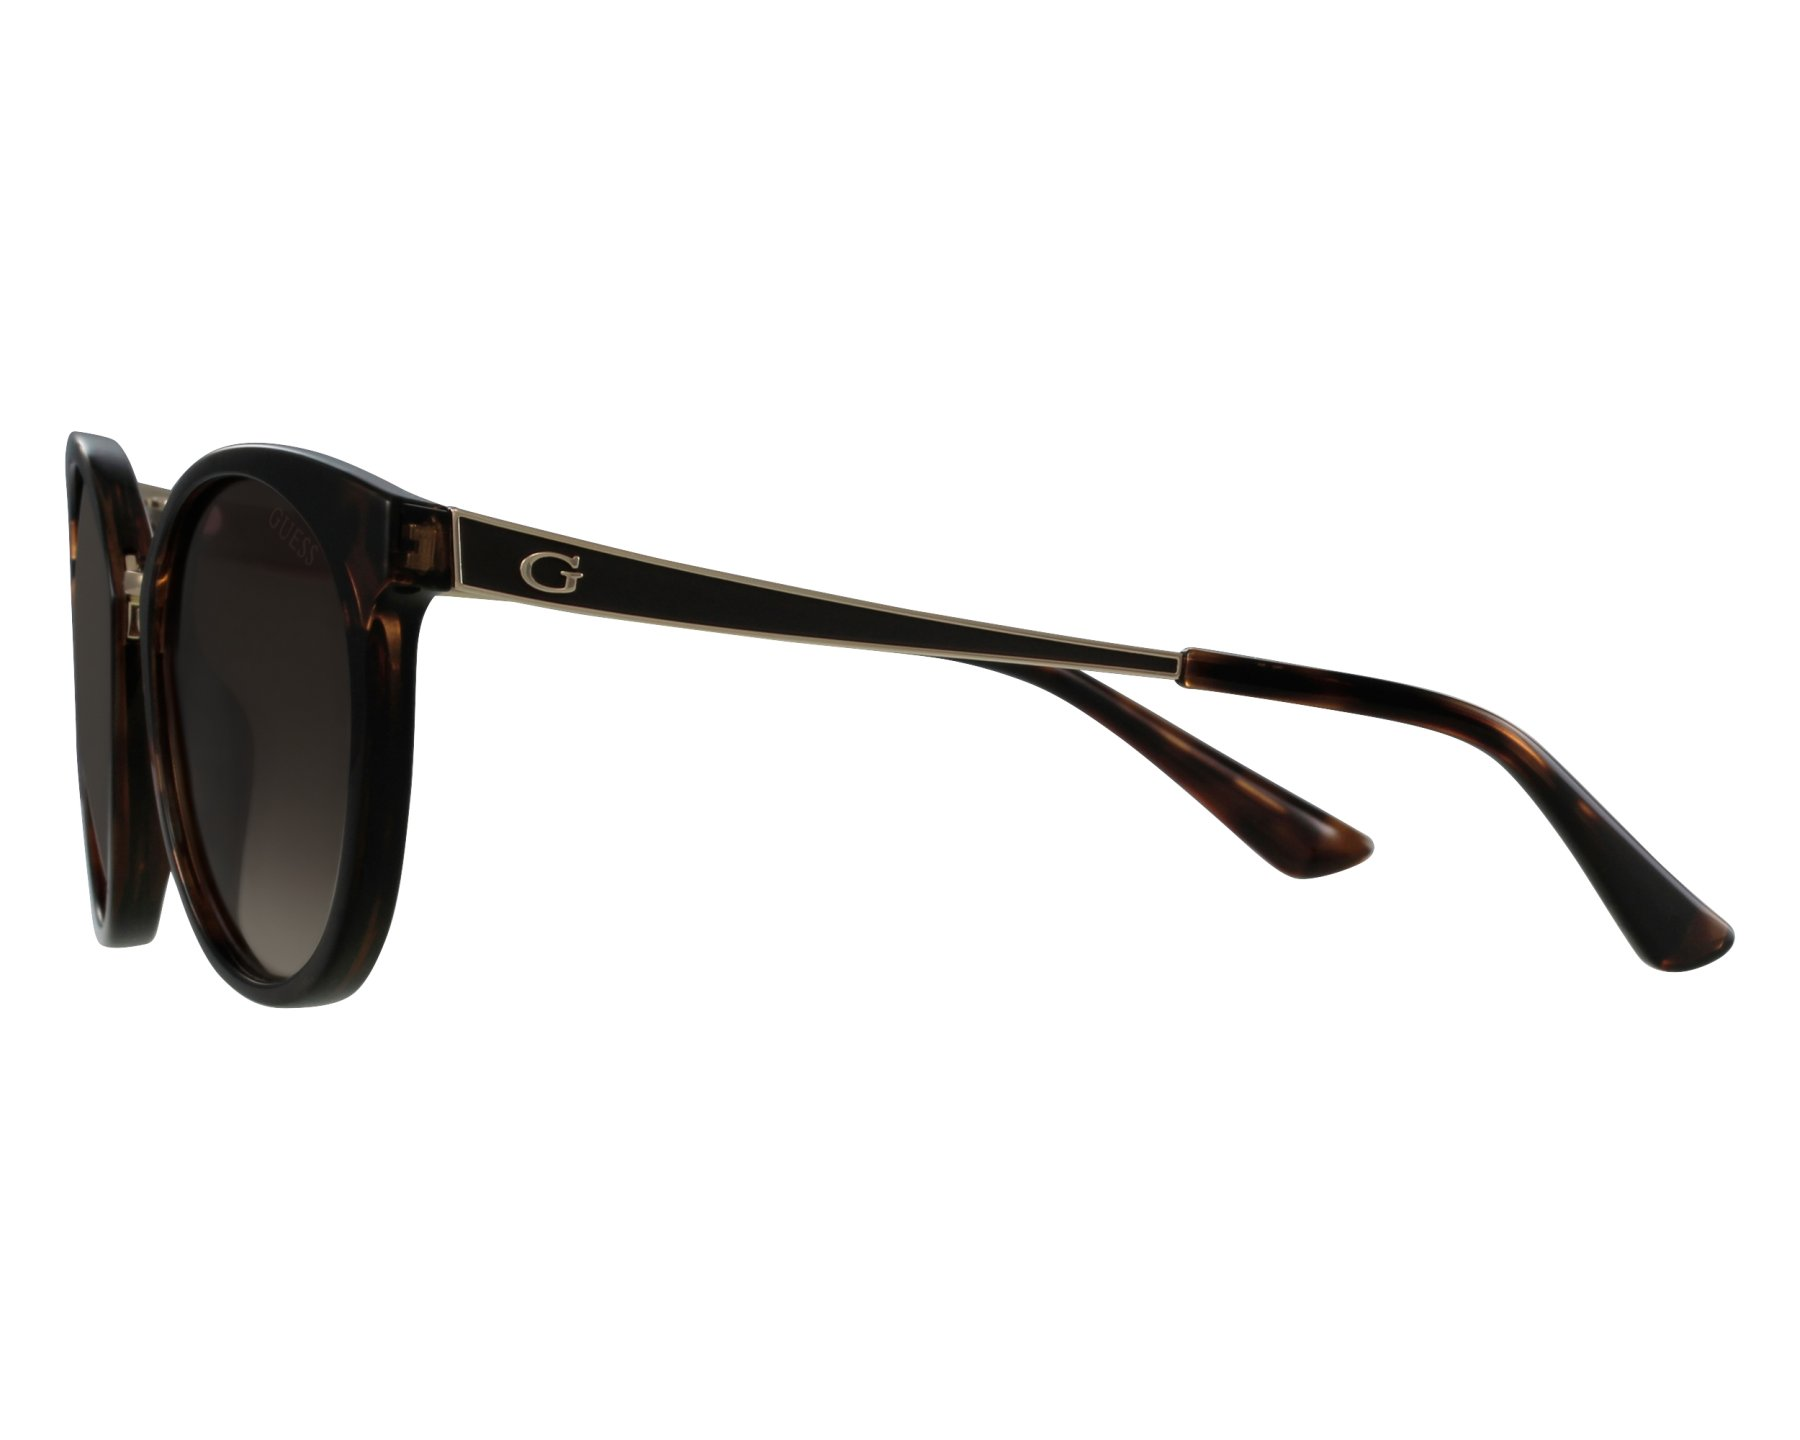 7ee968a98ab Sunglasses Guess GU-7459 52F 52-20 Havana front view